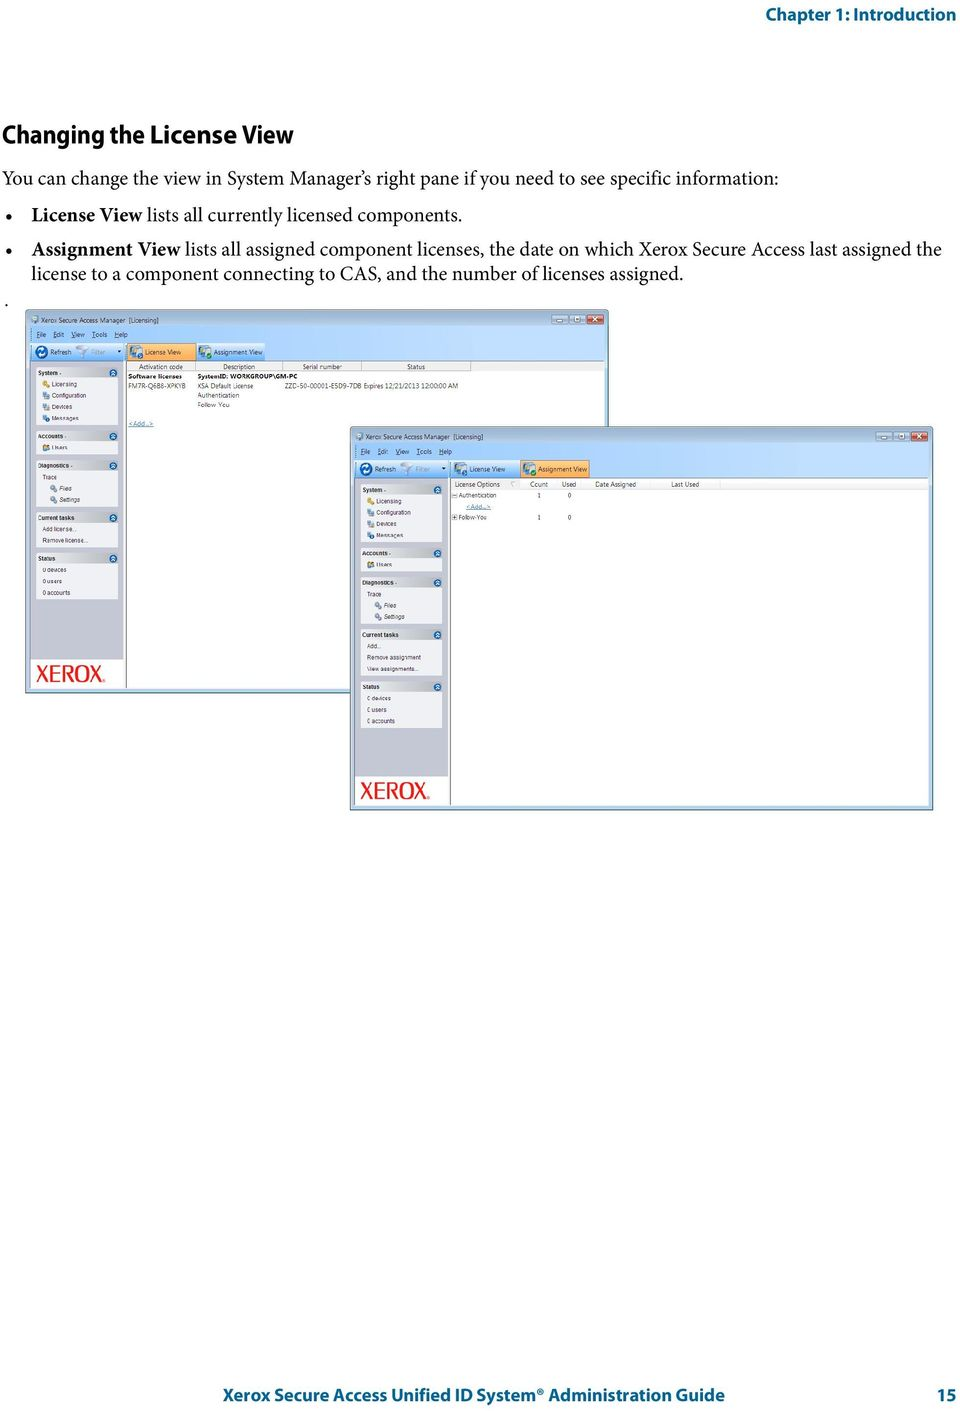 Assignment View lists all assigned component licenses, the date on which Xerox Secure Access last assigned the